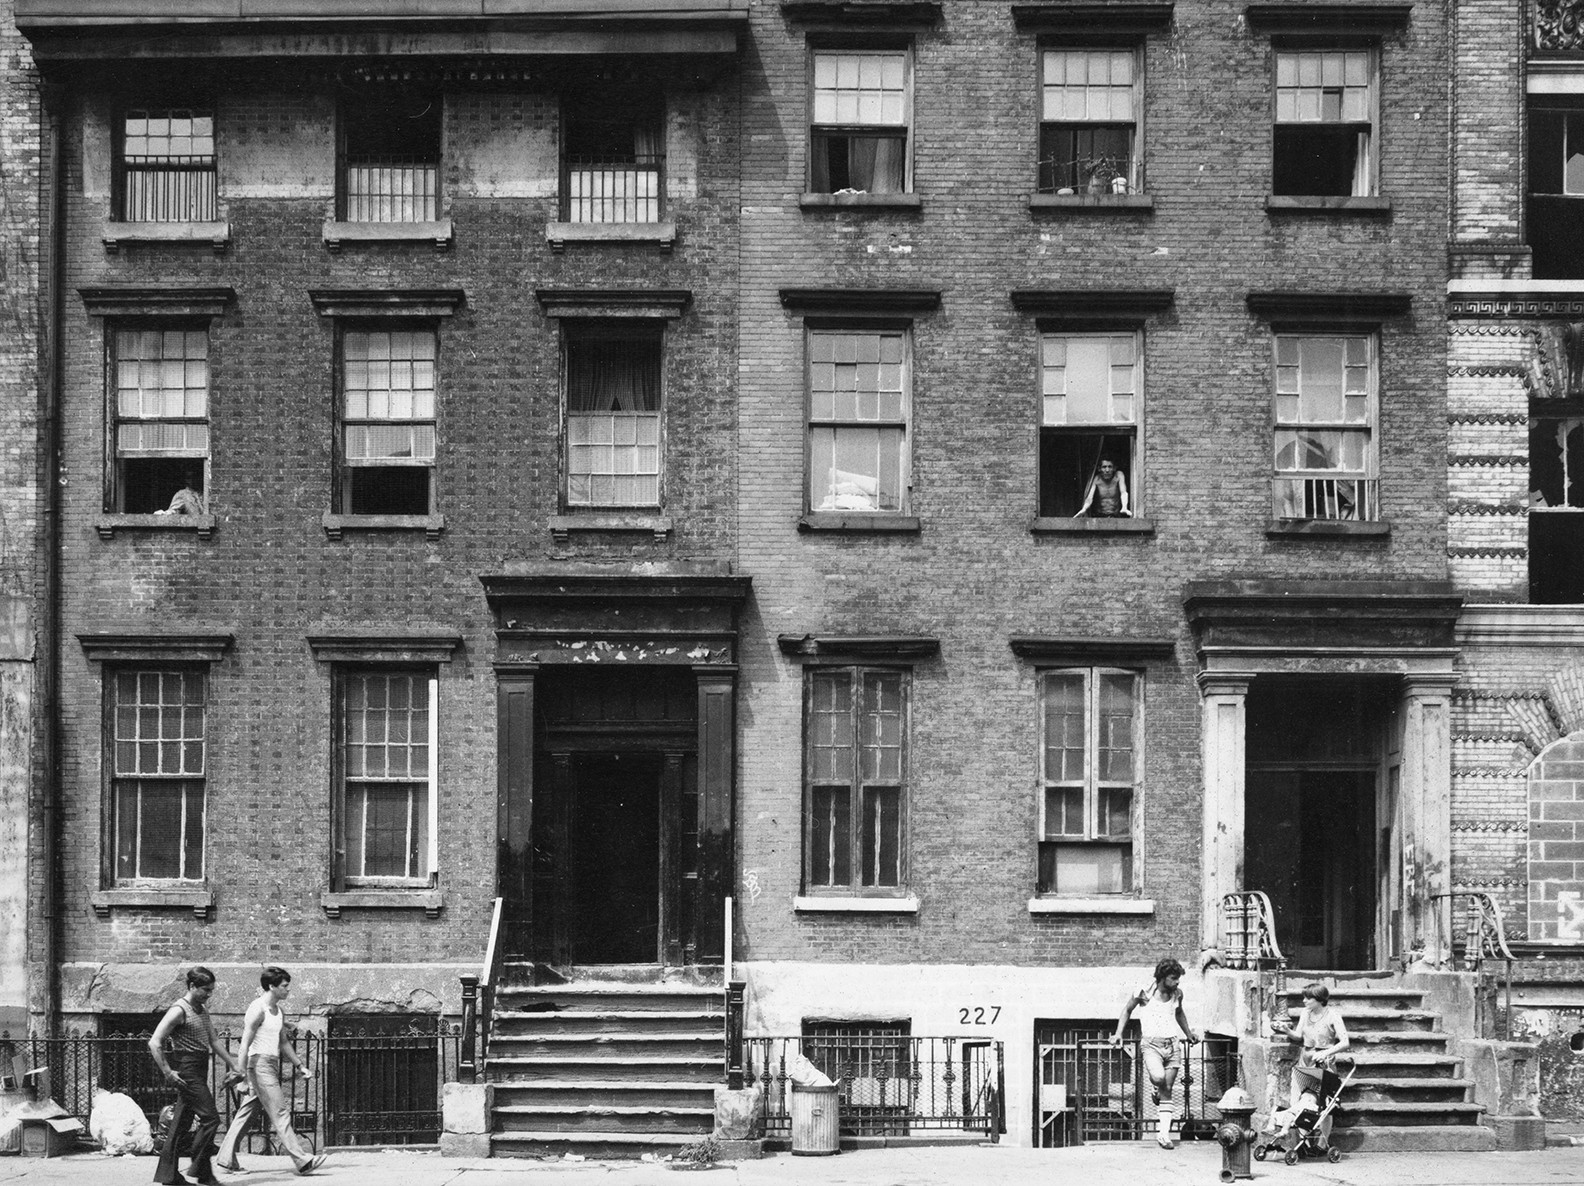 Photo of tenements with people walking by on the sidewalk, looking out from their windows, and lounging on the building steps in the summer